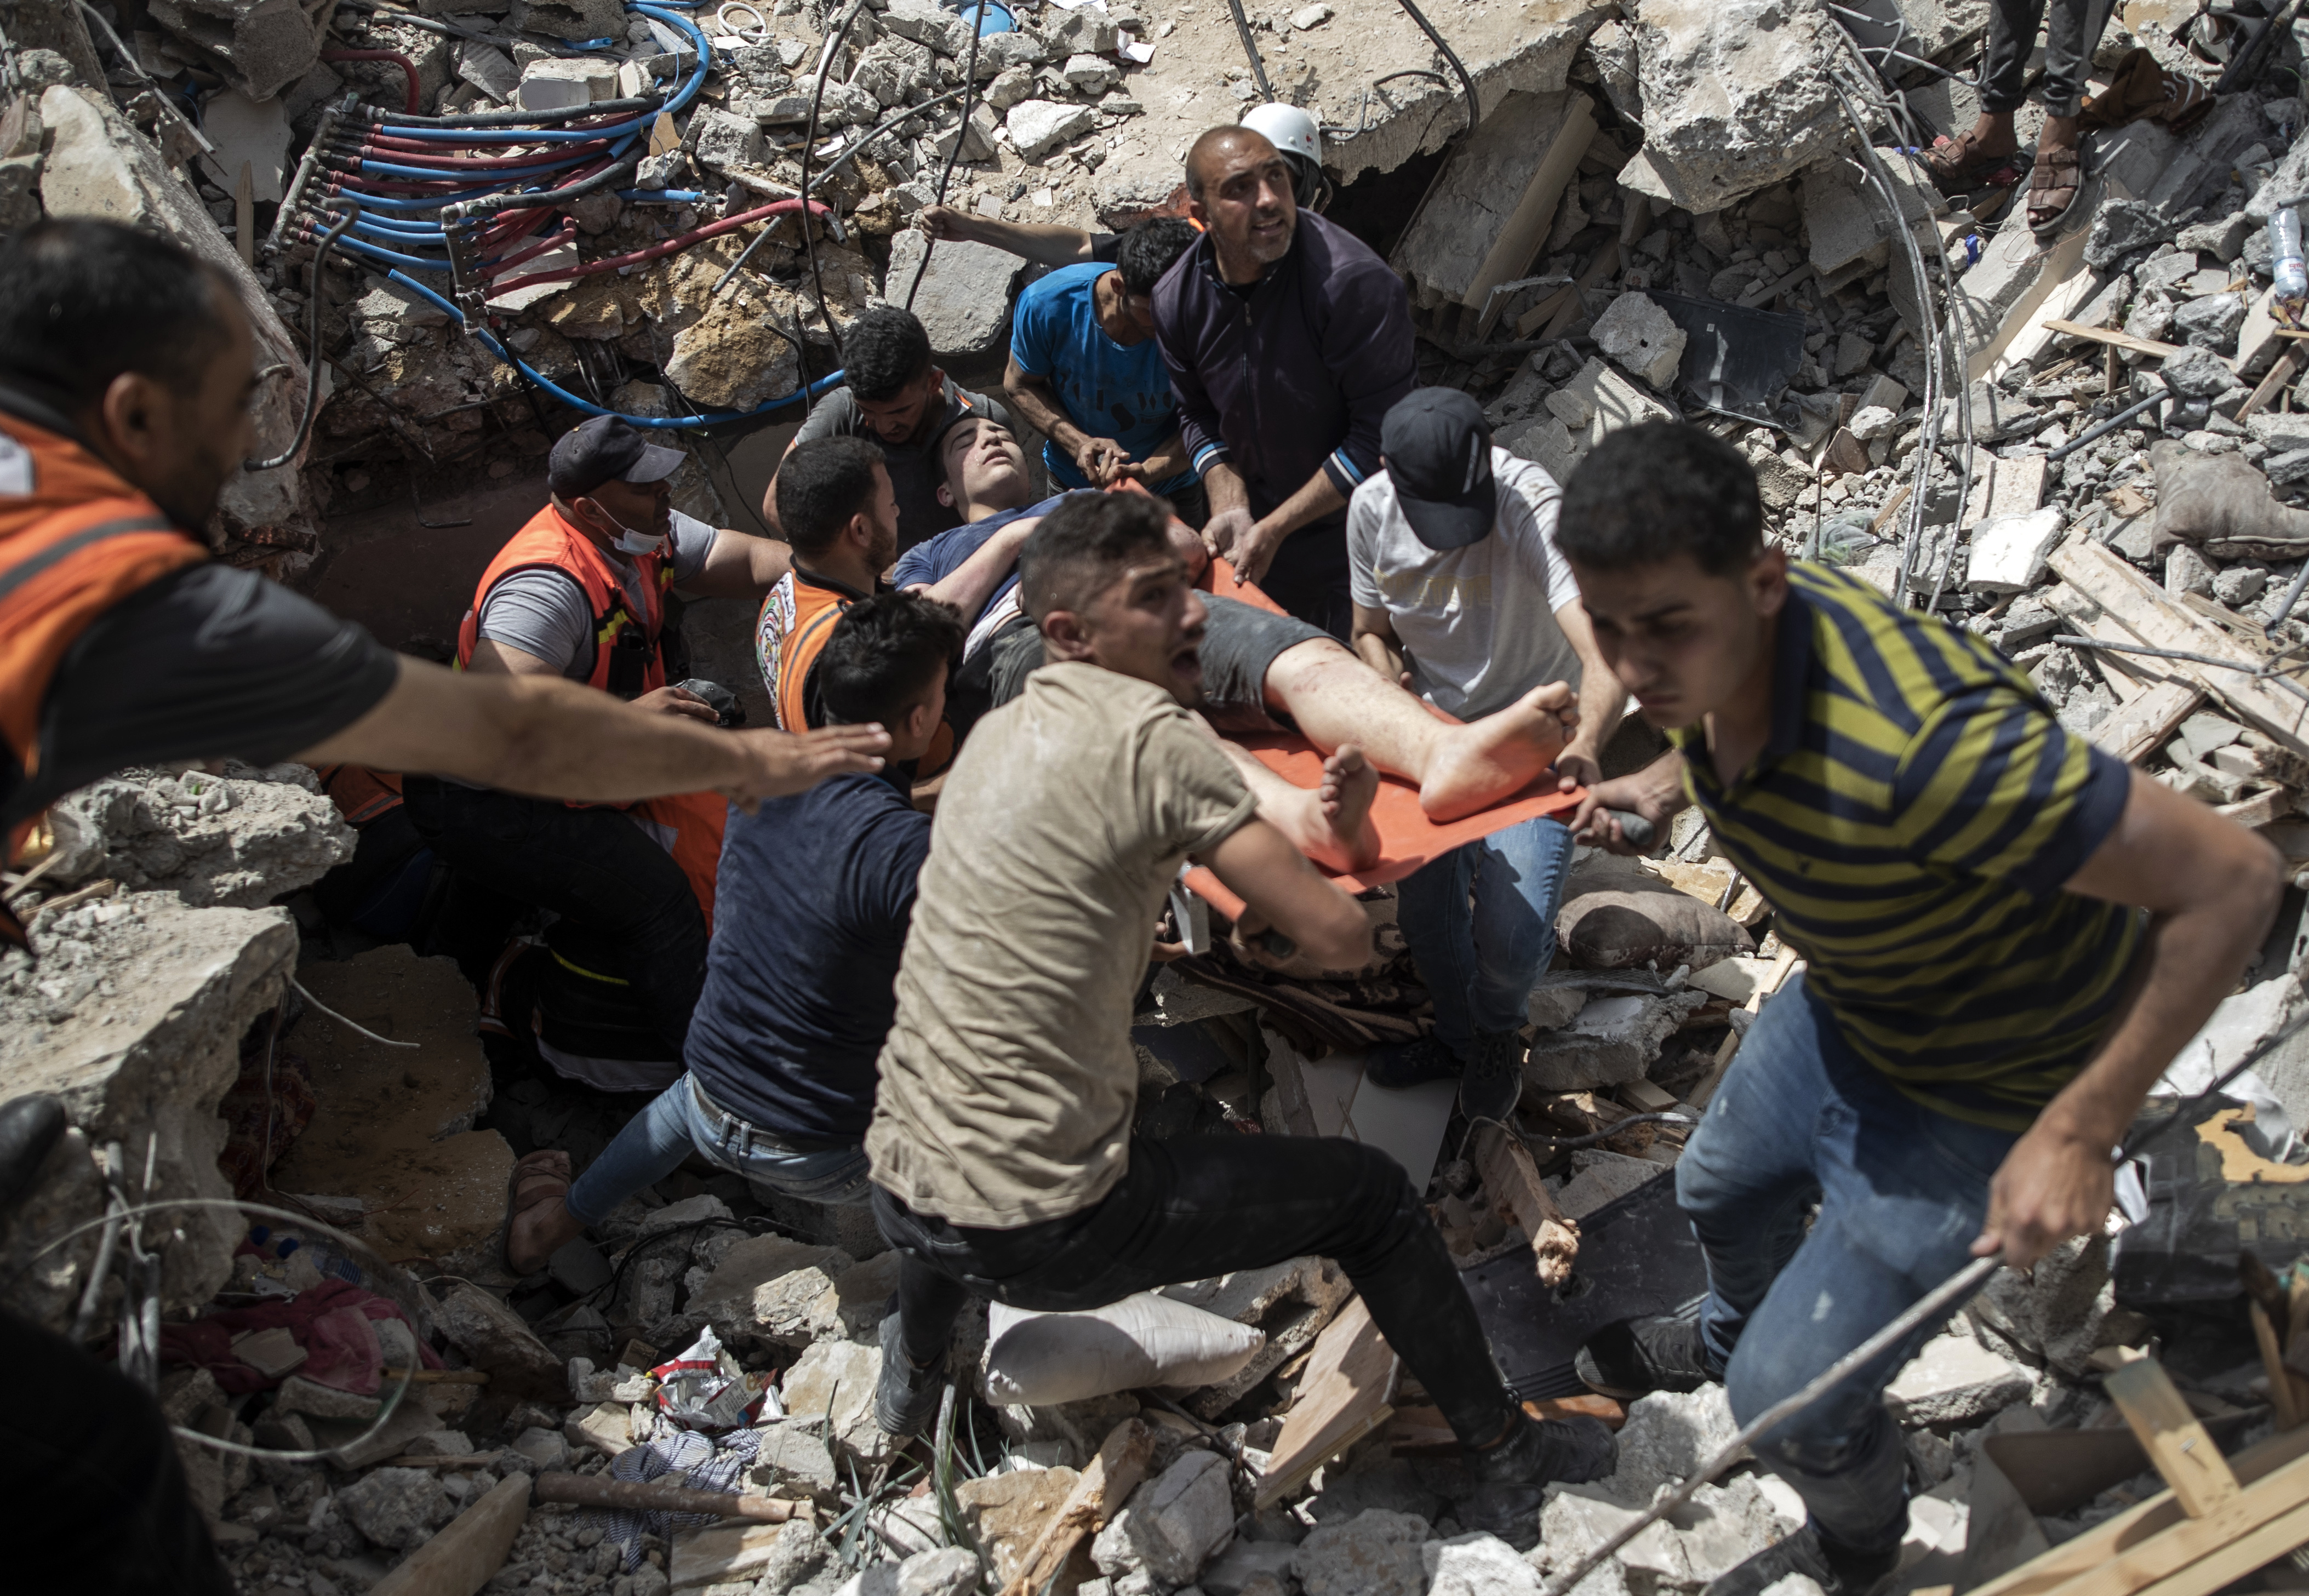 Palestinian rescue a survivor from under the rubble of a destroyed residential building following deadly Israeli airstrikes in Gaza City, on May 16, 2021.